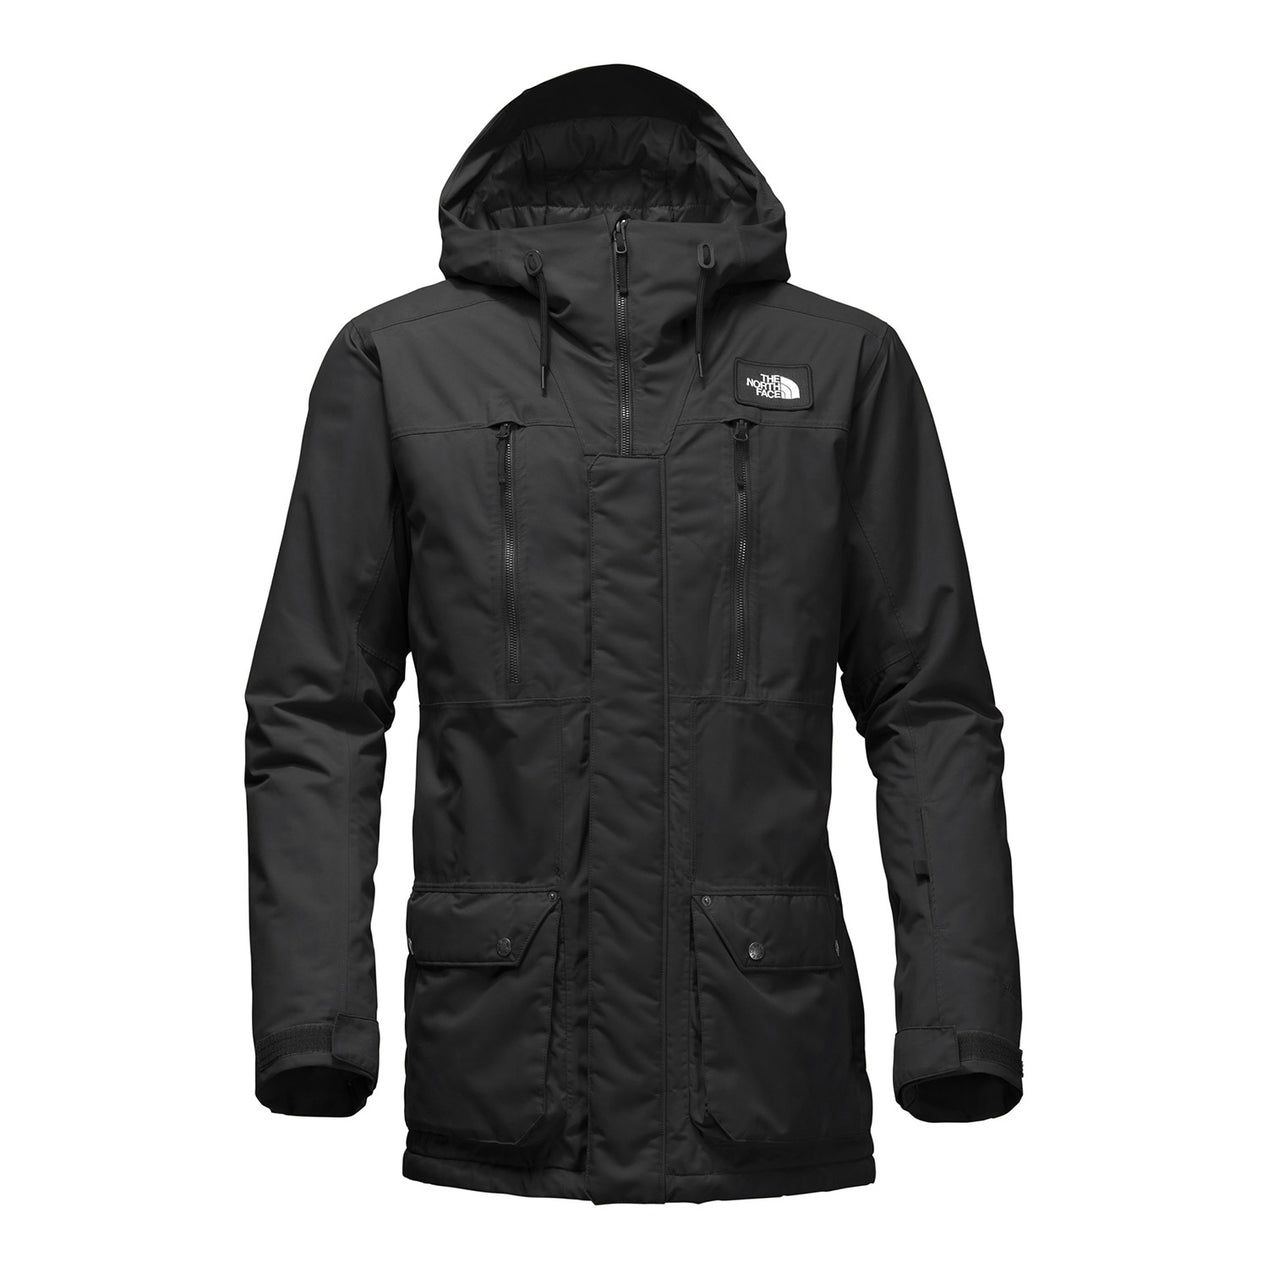 8d16f7351 The North Face Men's Hexsaw Jacket Past Season